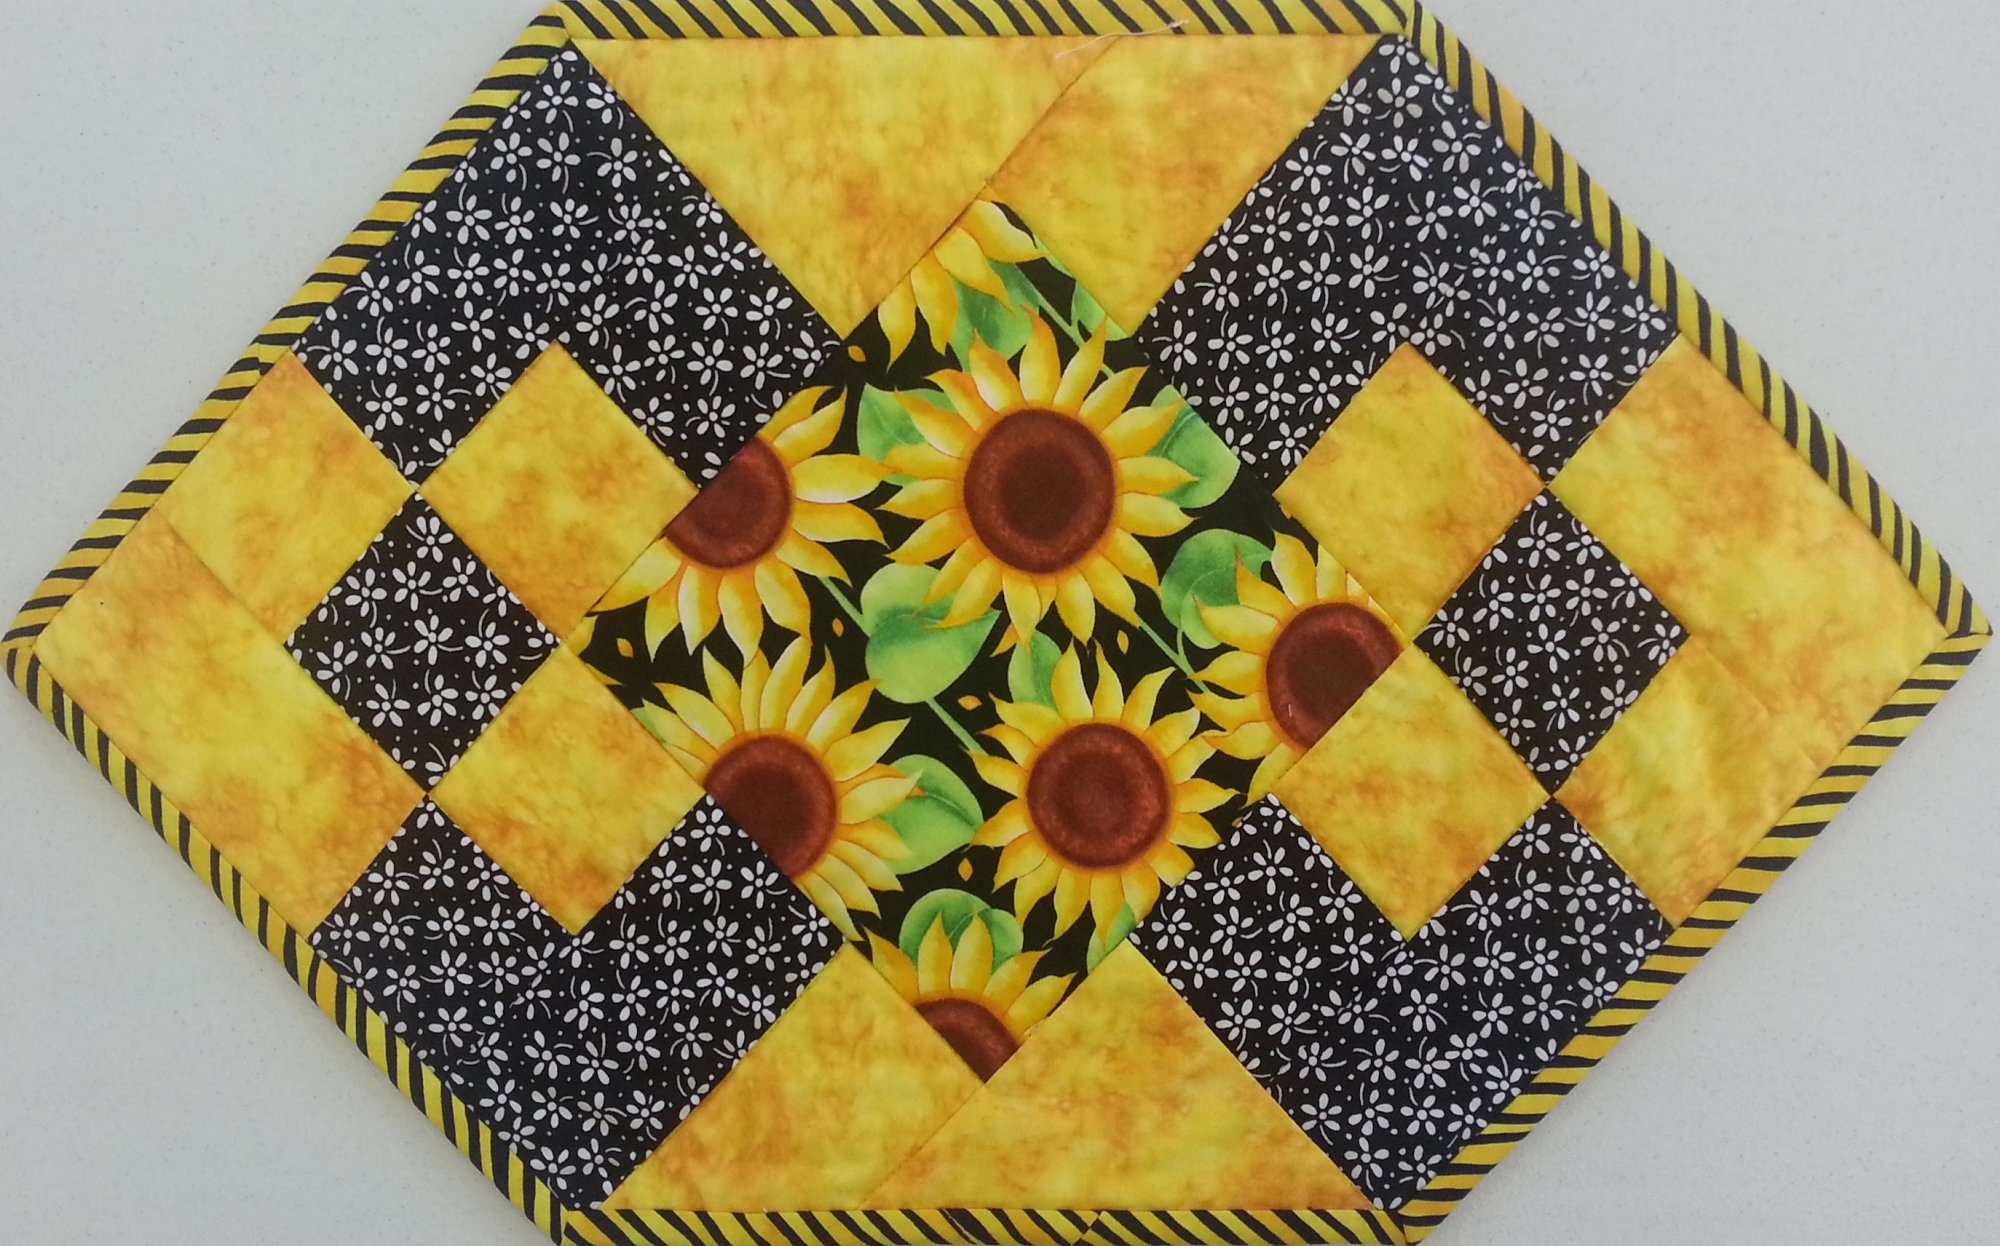 Yellow Placemats Sample (Set of 4)